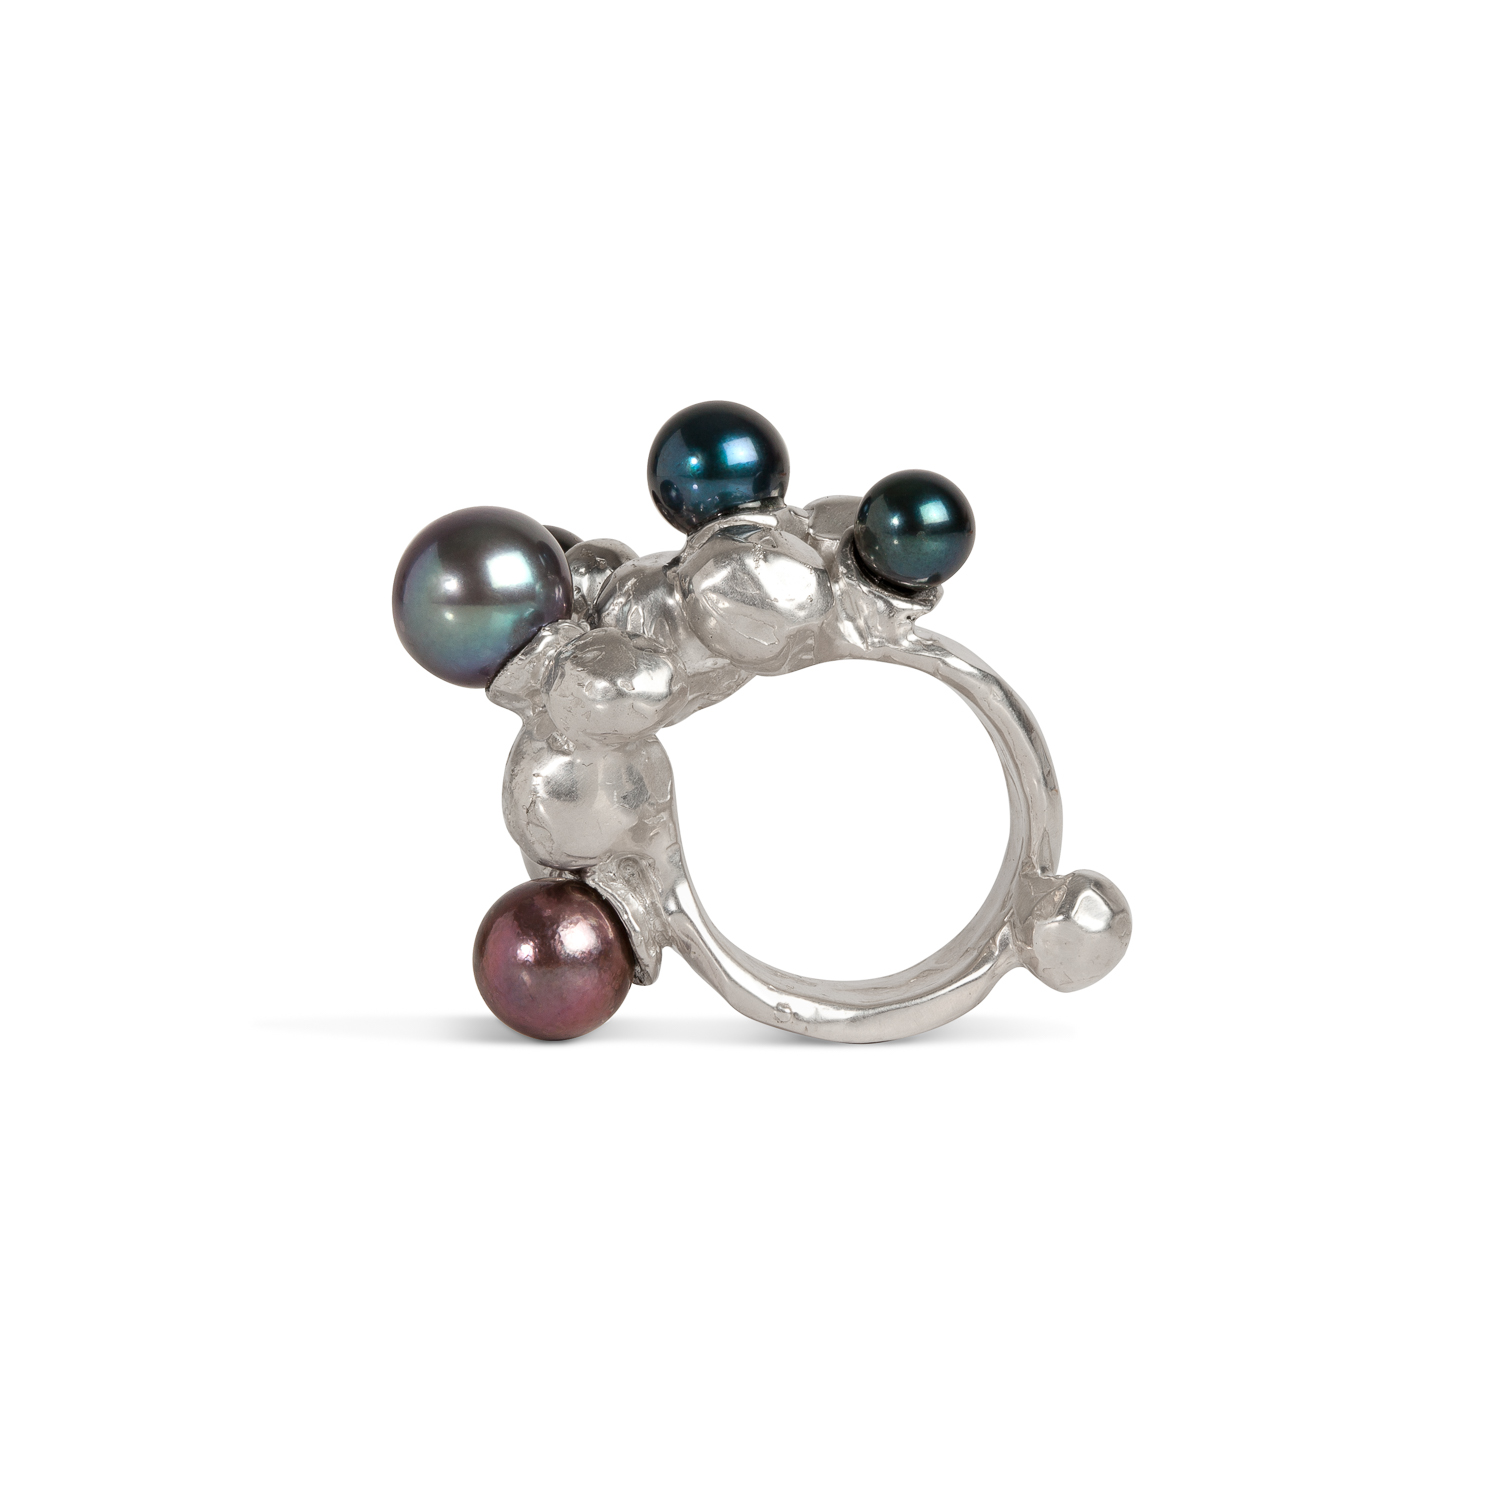 Bubble ring | sterling silver and 5 black pearls